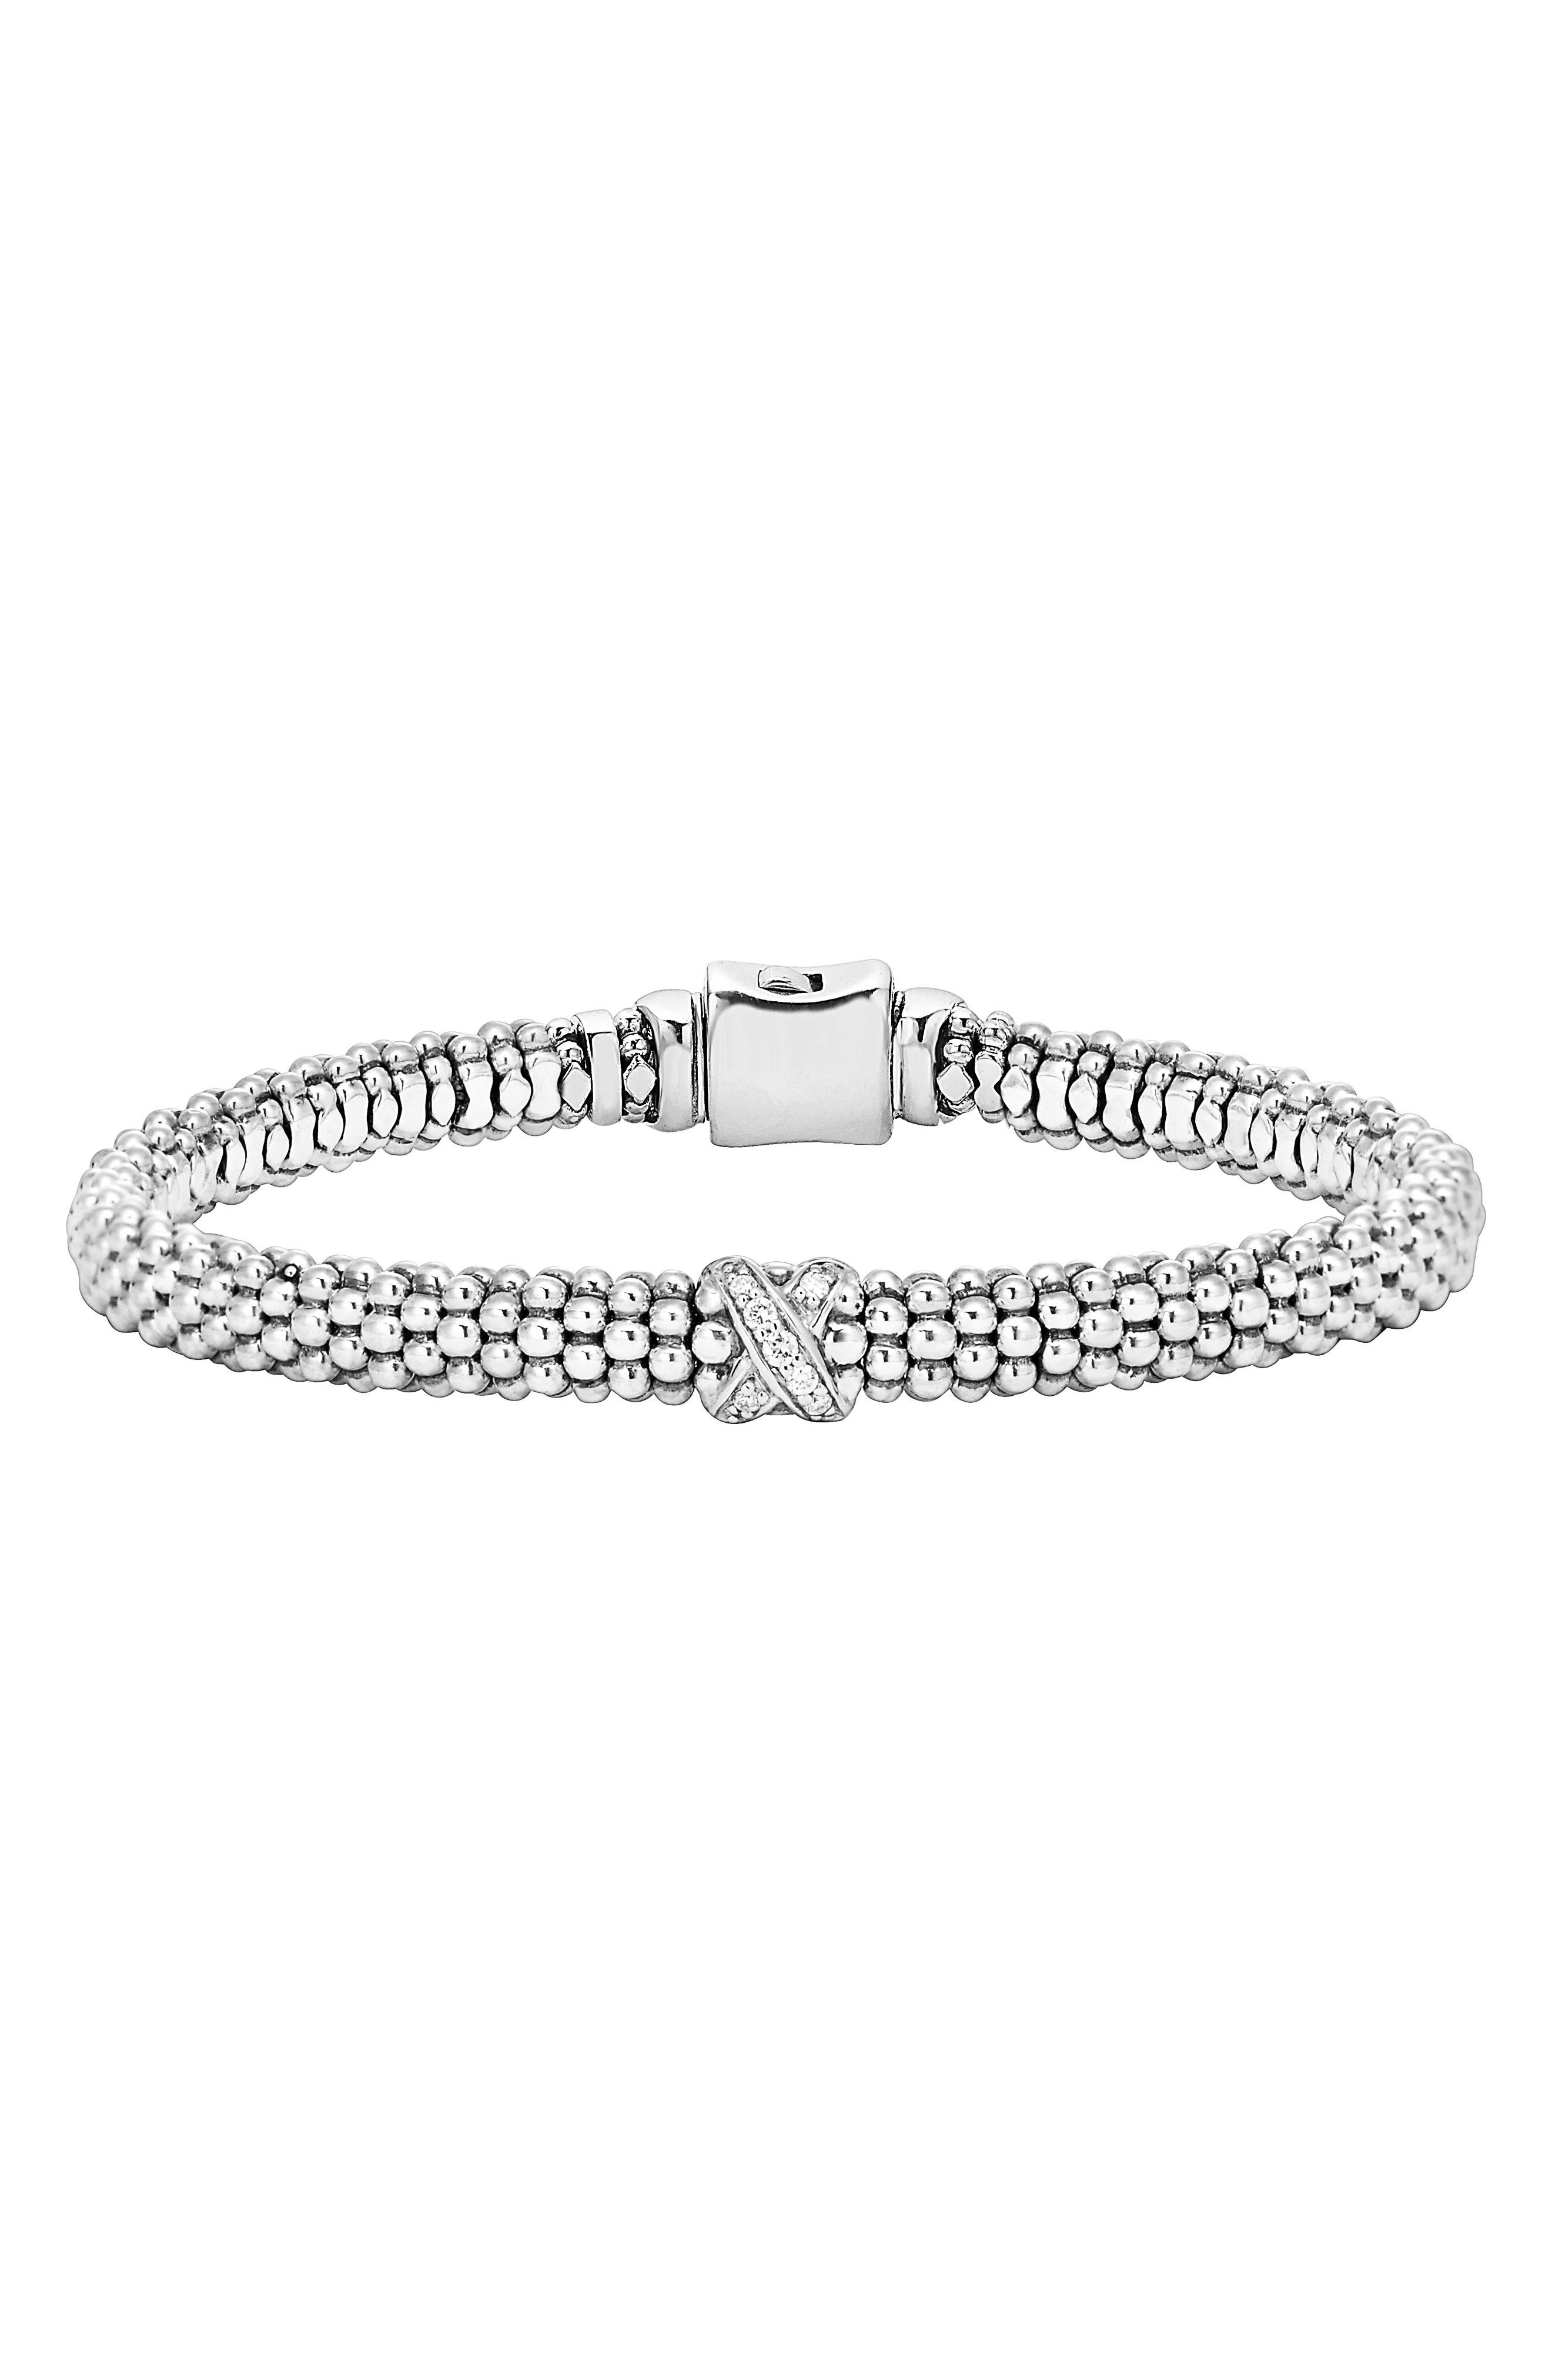 Alternate Image 1 Selected - LAGOS Caviar 'Signature Caviar' Diamond Rope Bracelet